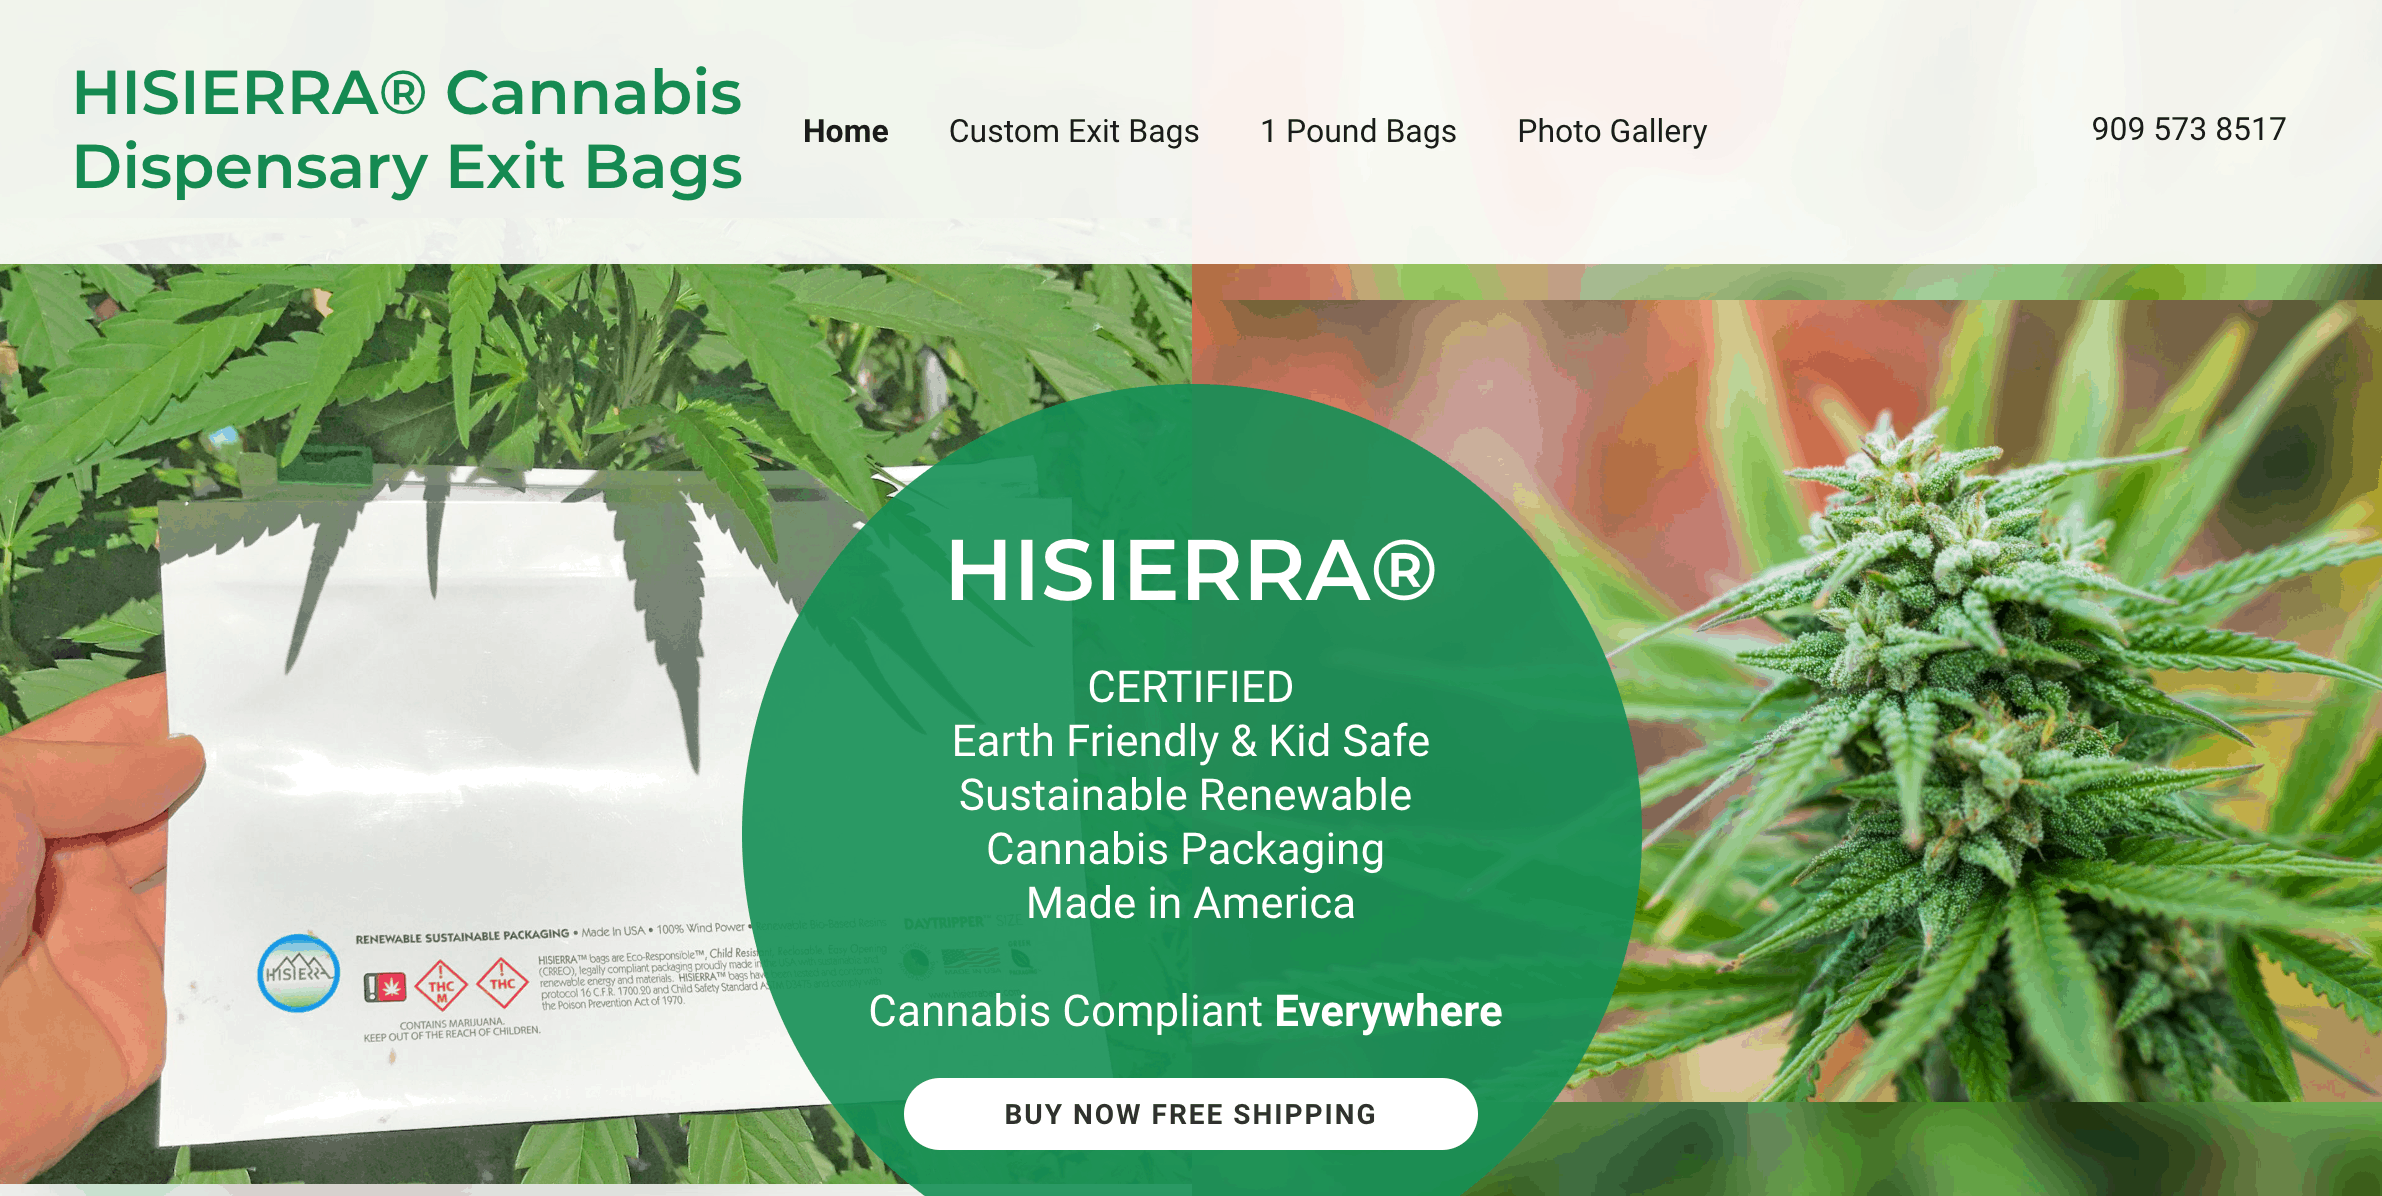 HISIERRA website